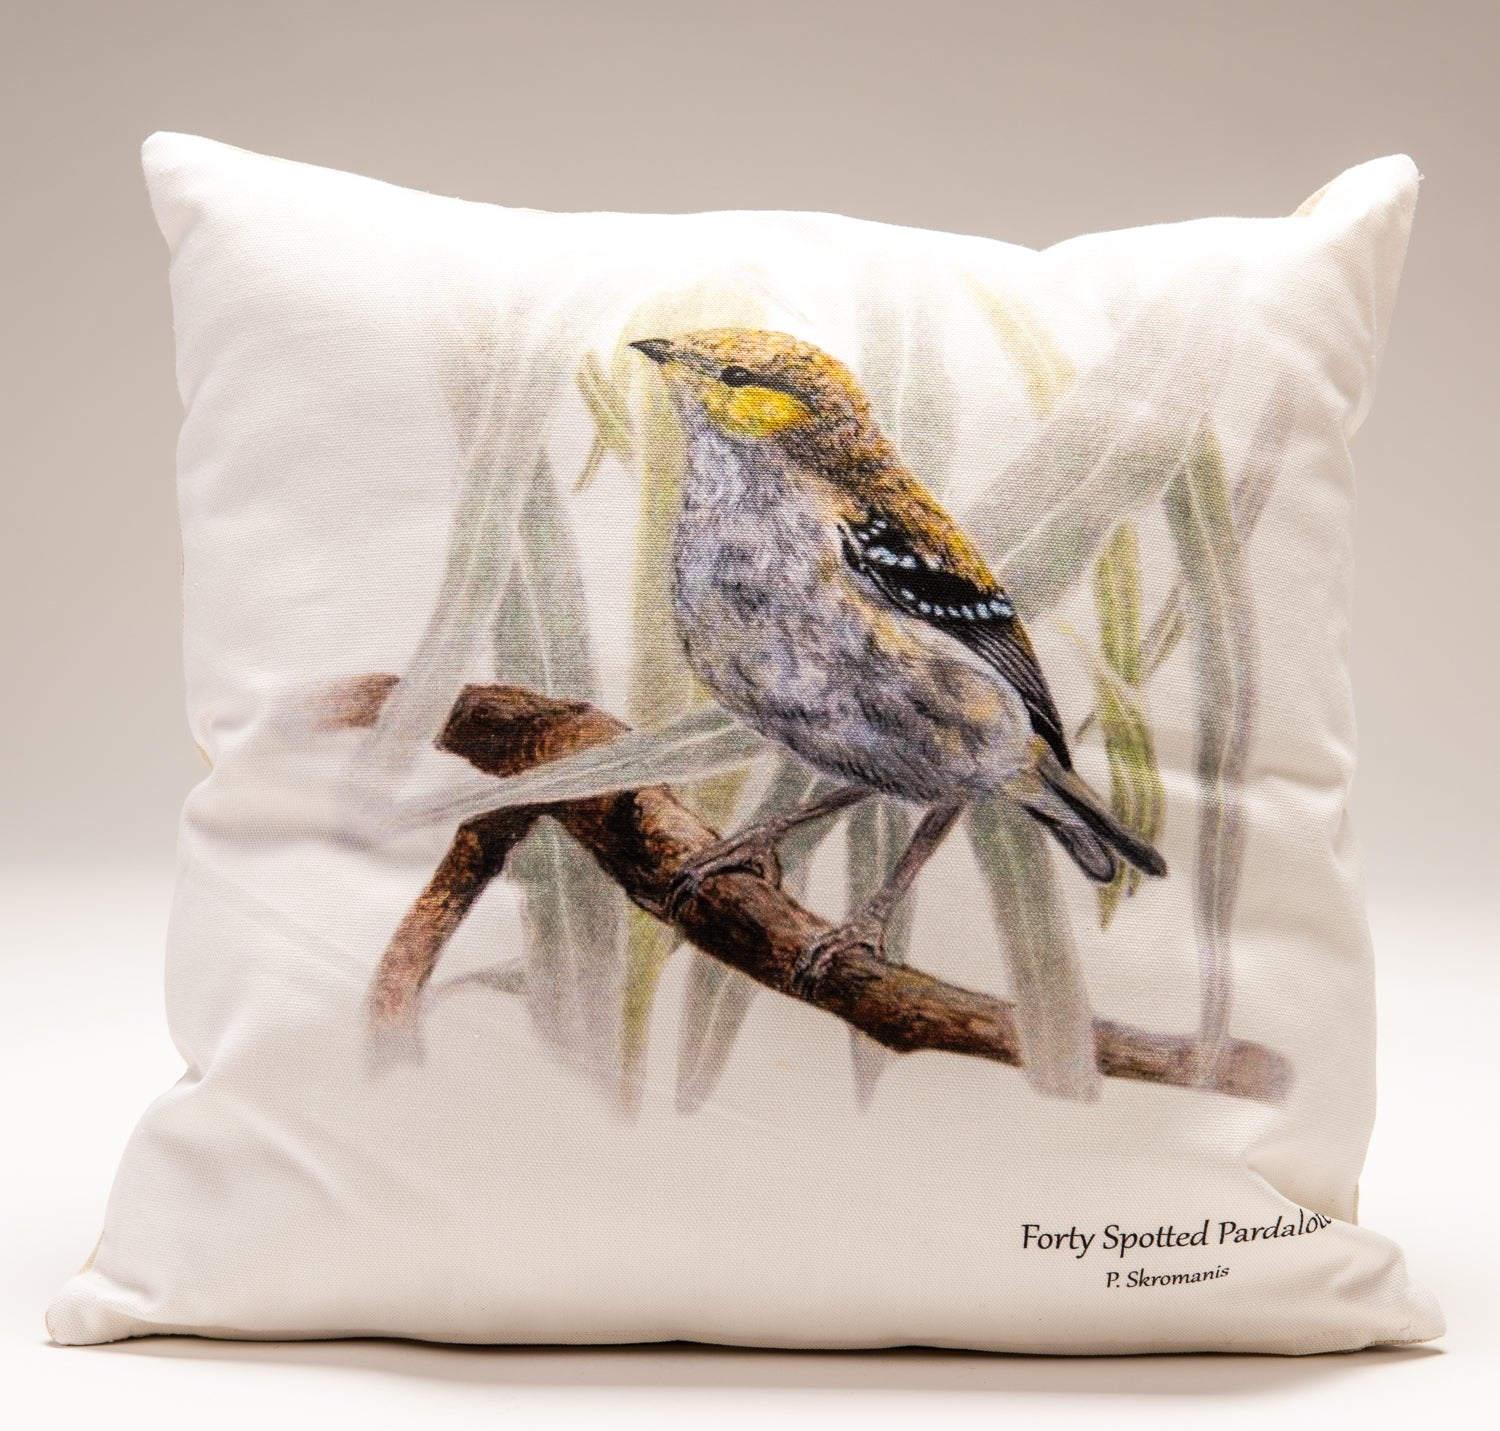 Cushion Covers - Forty-Spotted Pardalote